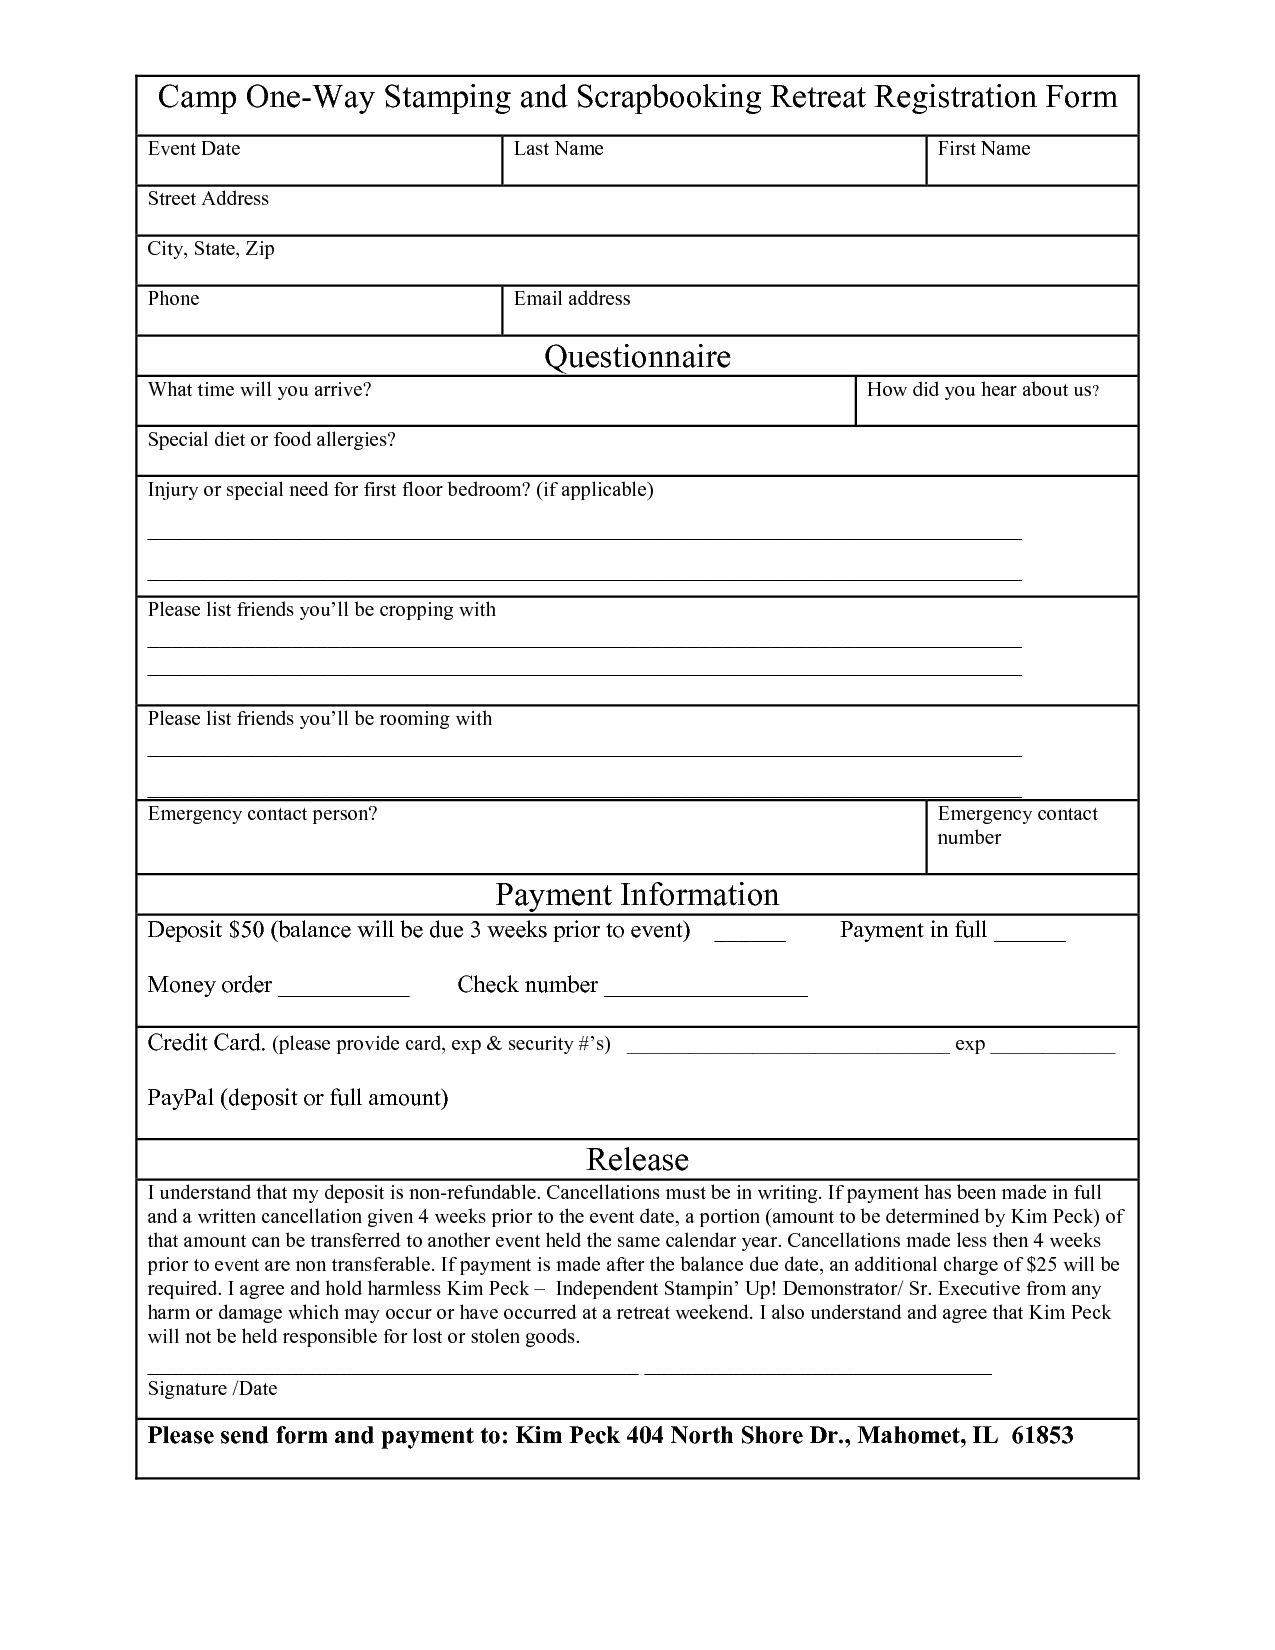 The Surprising Free Registration Form Template Word Want A Free Refresher In Camp Registration Form Template Registration Form Word Template Event Registration Registration form template free download